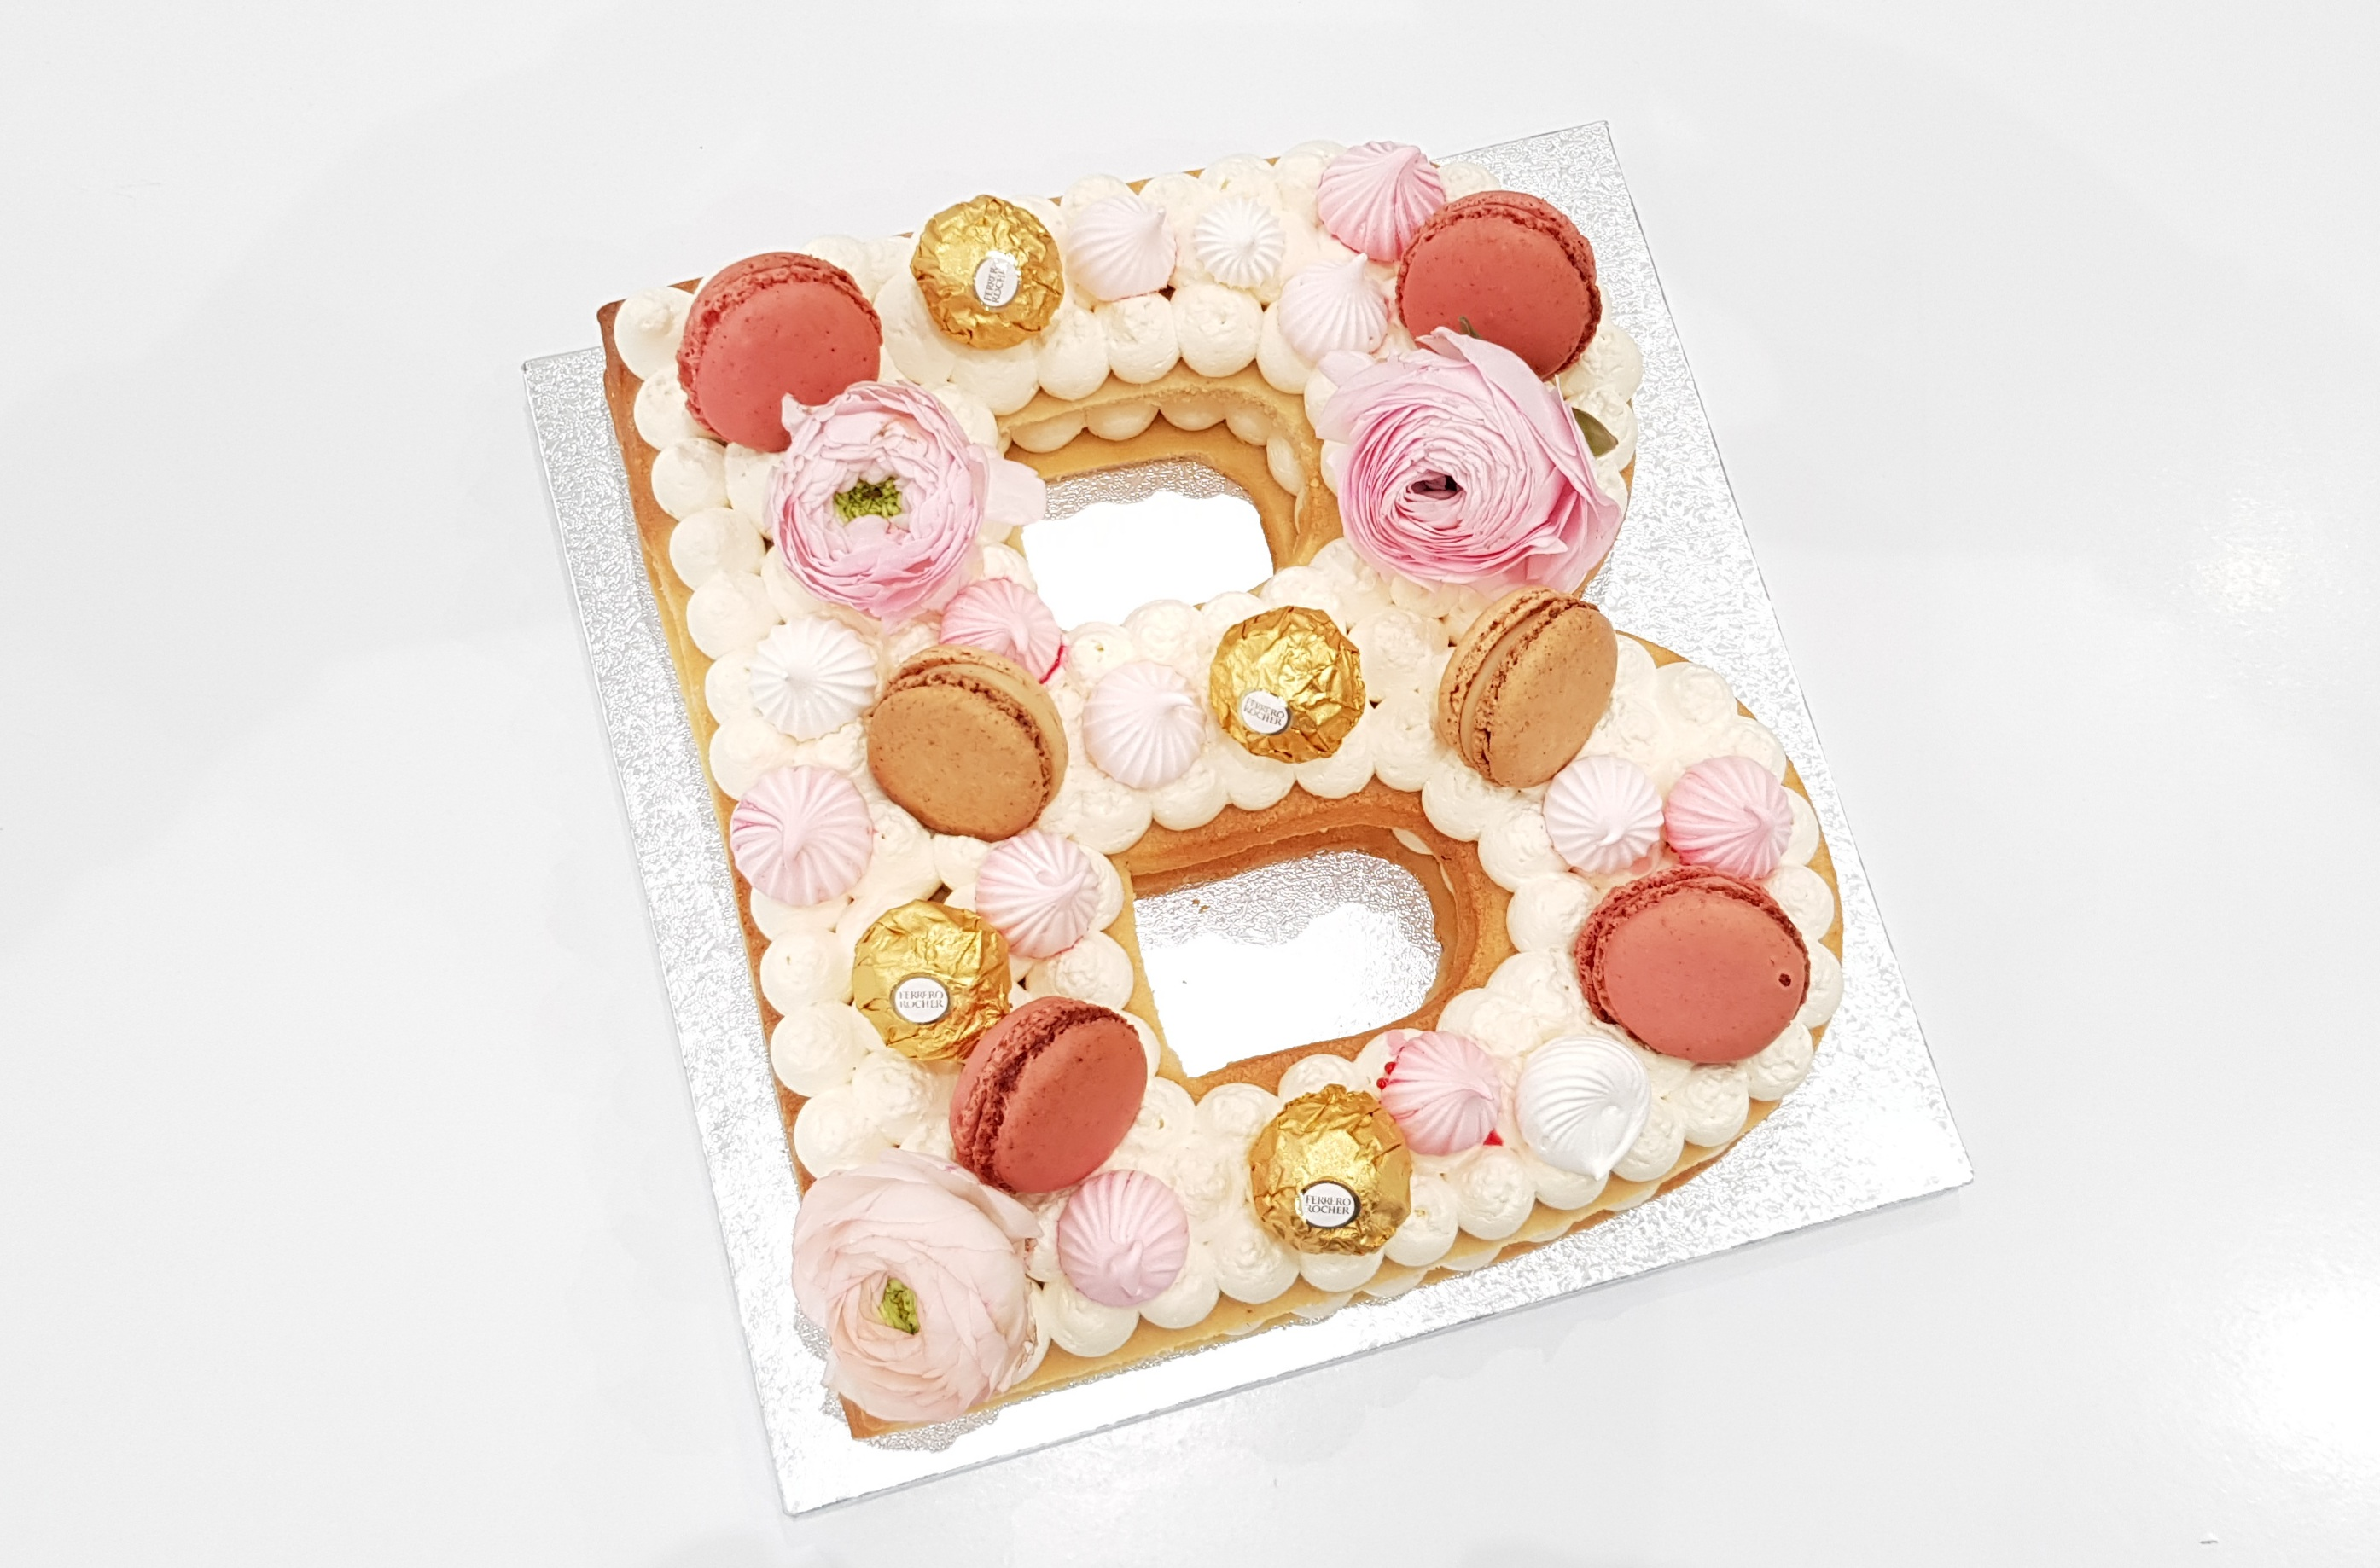 numbercake paris ile de france